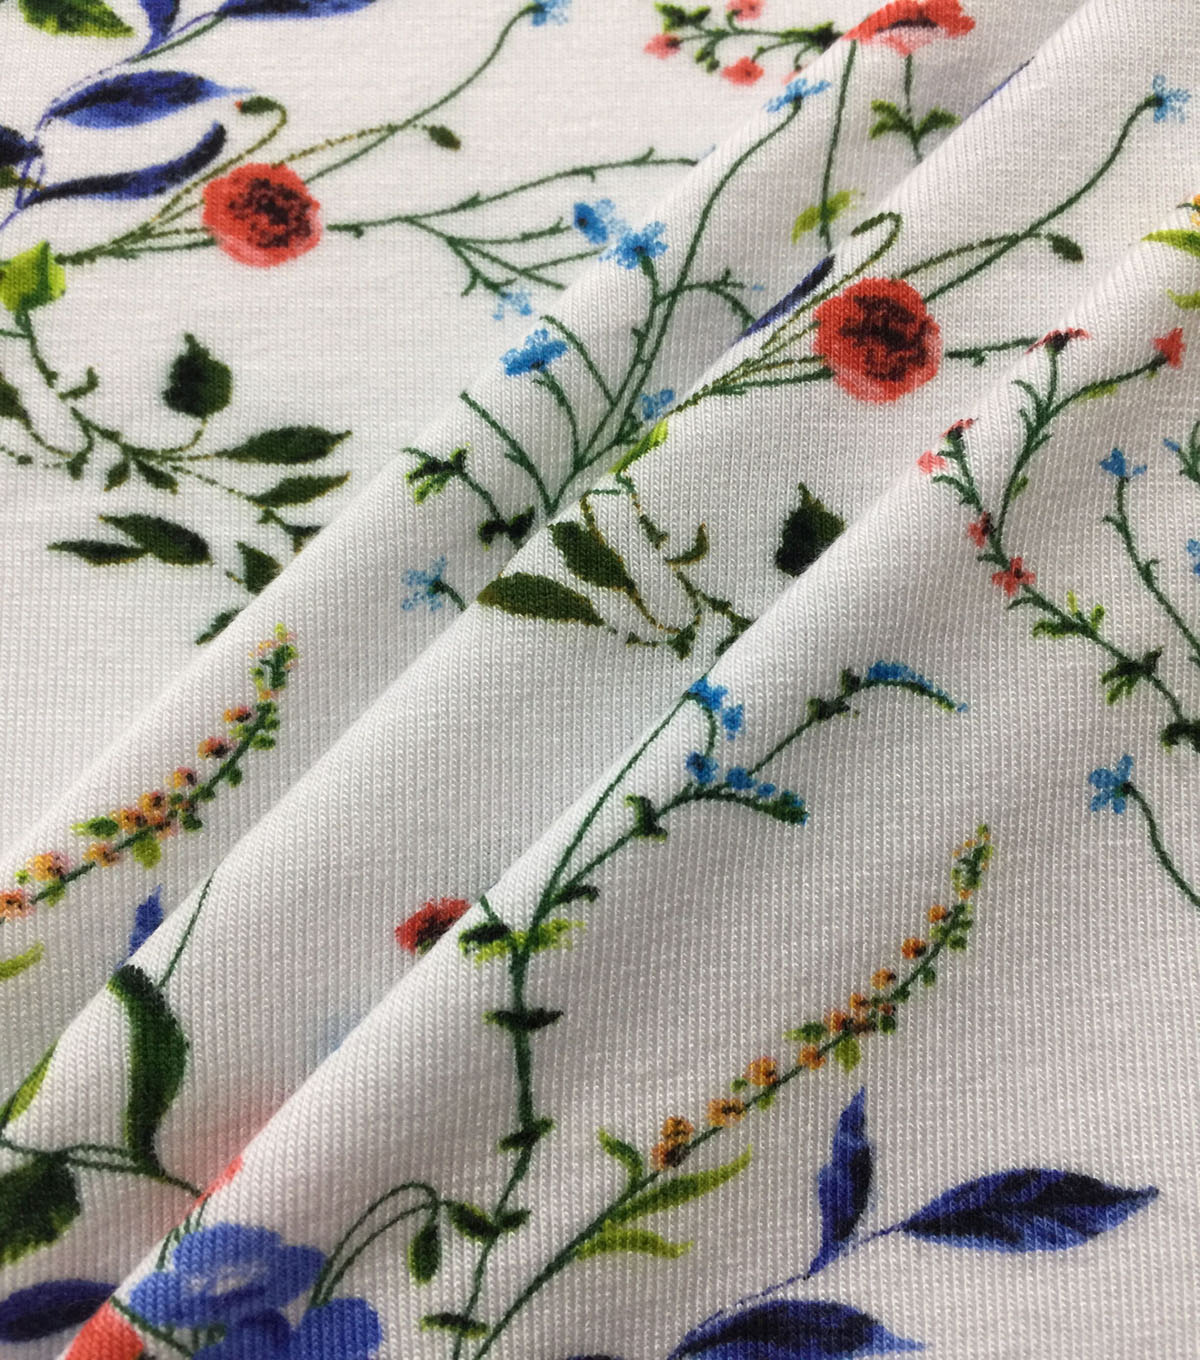 Rayon & Spandex Printed Knit Fabric-Dainty Floral on White